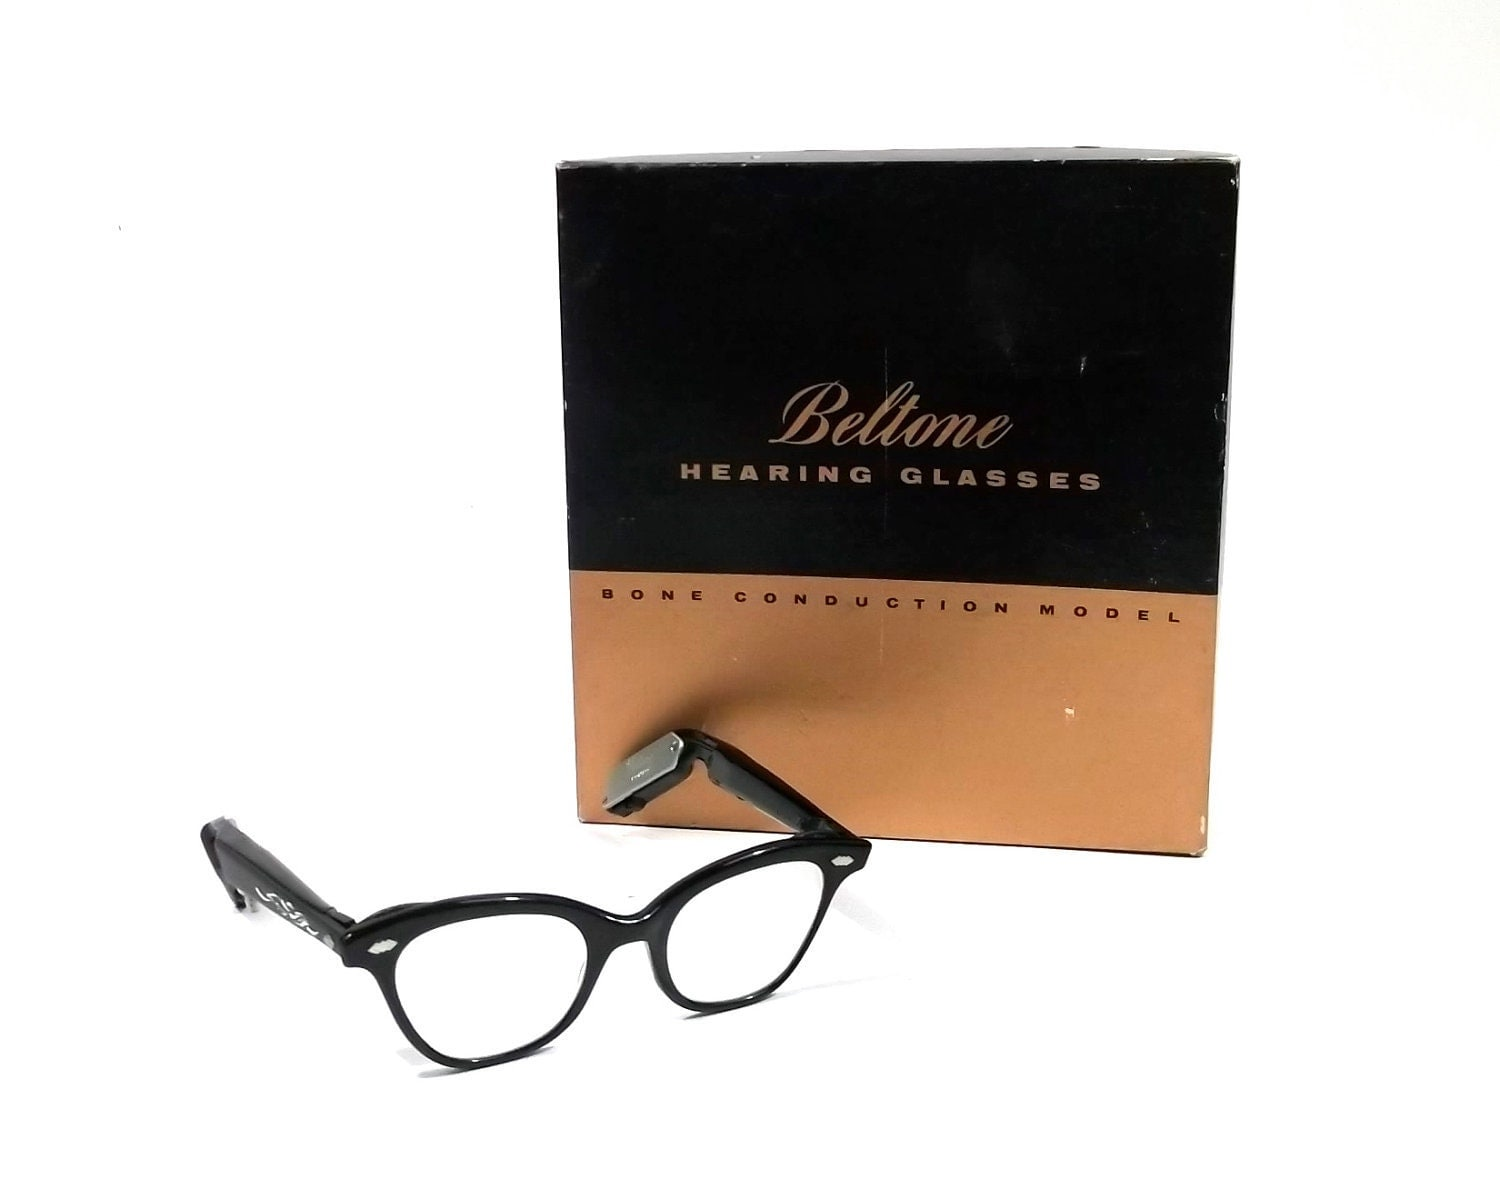 Eyeglass Frames For Hearing Aids : BELTONE 1950s rare Hearing AID Glasses // Bone Conduction